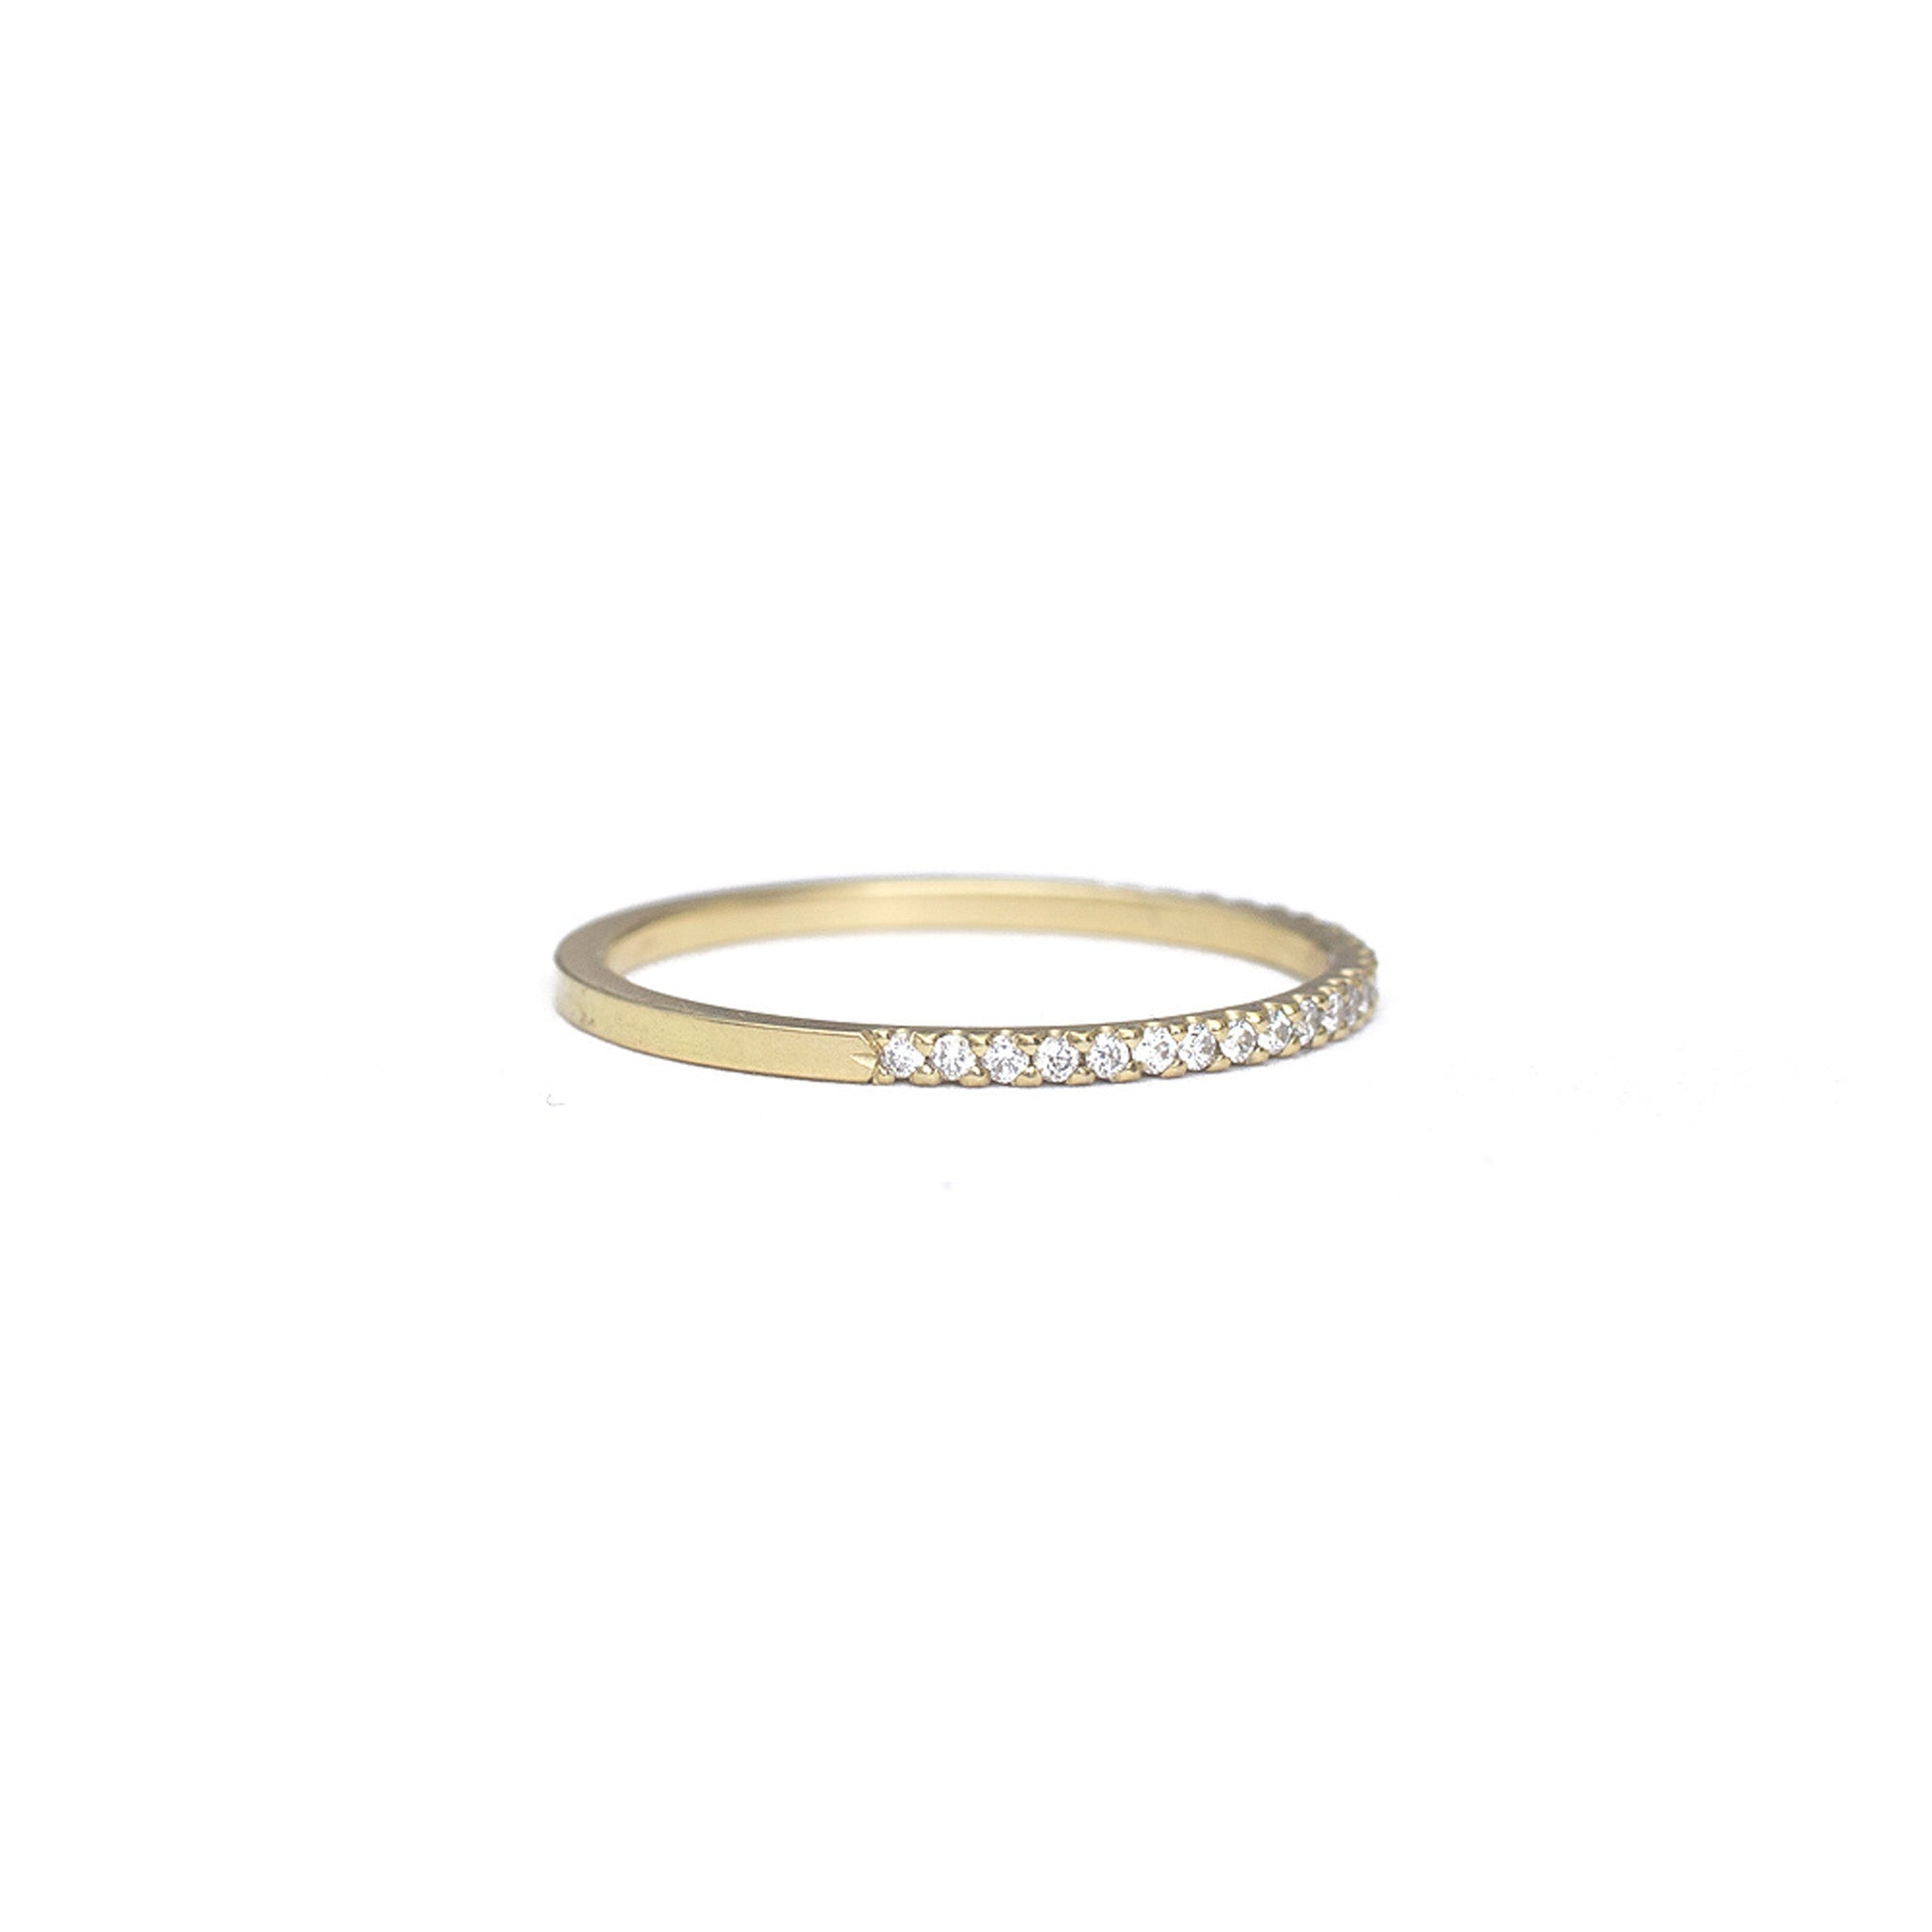 center station pave bangles everlast silver bangle rose mesh bracelet cut closure gold icon diamond tone micro two and magnetic products